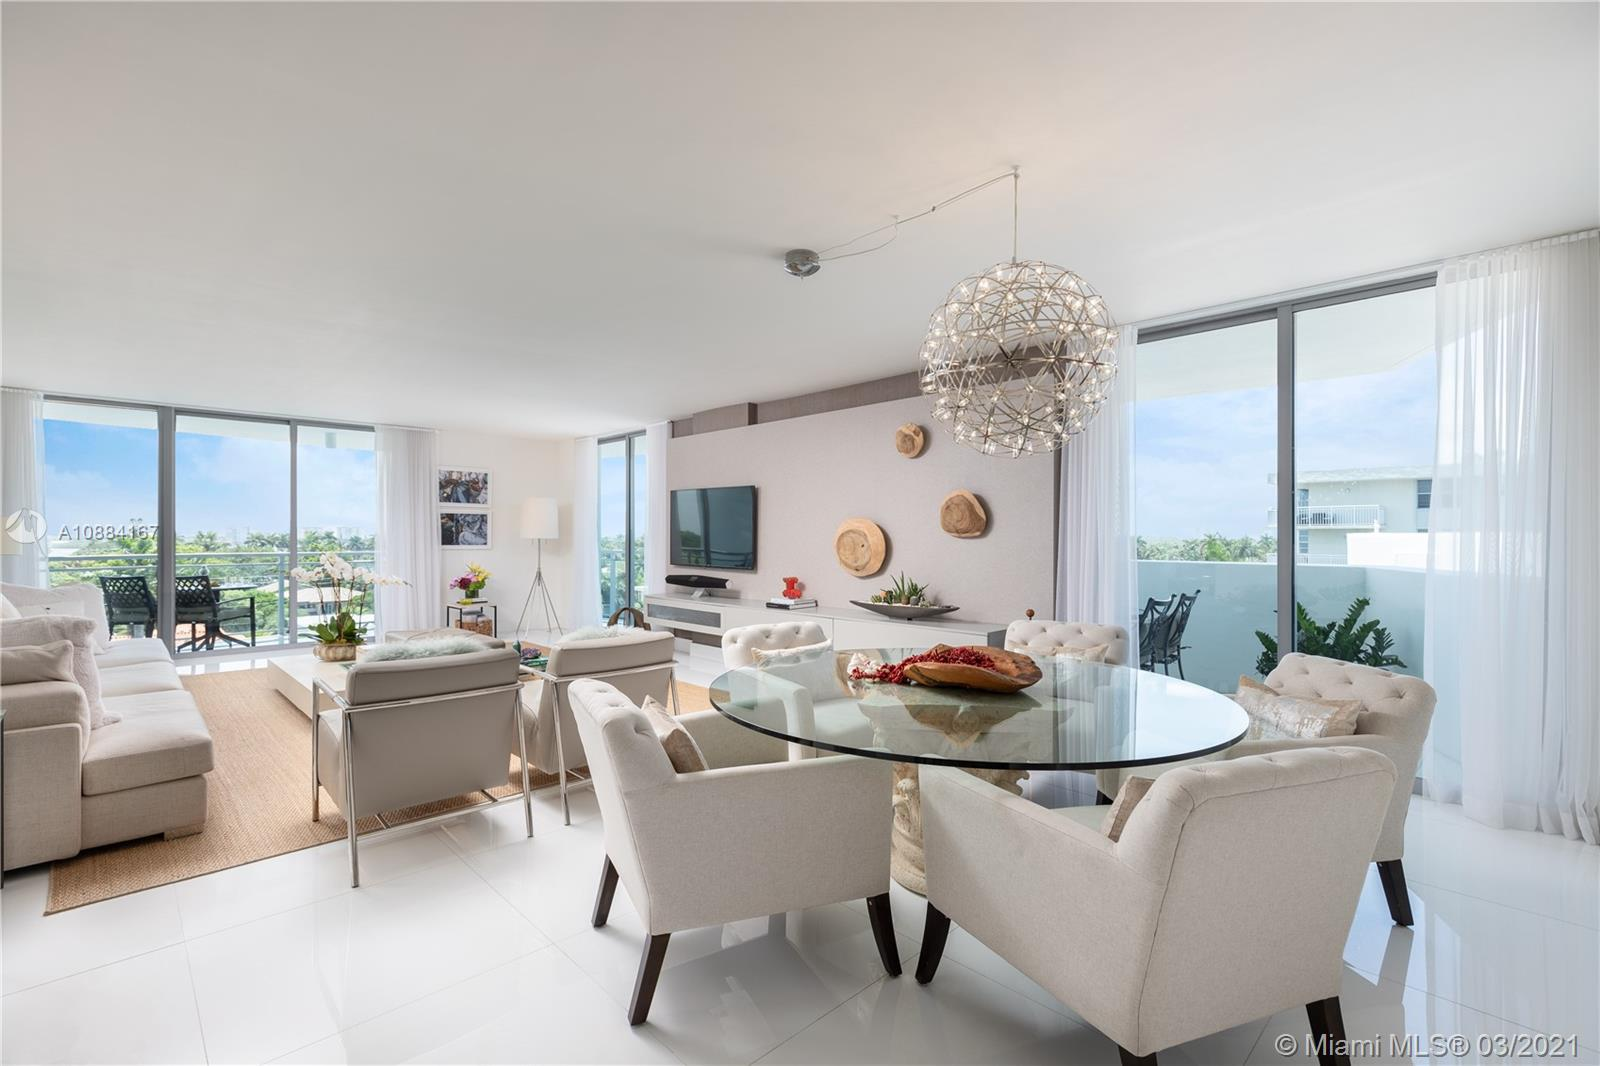 Upgraded flowthrough high-floor corner unit at Riva Bay Harbor, a 25-unit boutique waterfront building, completed in 2013, less than a mile from the Bal Harbour Shops. Riva 604 overlooks Biscayne Bay with unobstructed north, west and east views. A private elevator foyer opens directly to this spacious 3 bed / 3.5 bath with two terraces. Reflections of light off the water highlight the Brazilian modern ambiance of interiors by Artefacto, featuring white quartz countertops and white porcelain floors throughout. Enjoy abundant storage closets and high-end appliances. Relax in your own peaceful oasis with full-time security, valet parking and front desk attendant. Catch the perfect sunrise, dip in the rooftop pool, or stroll through the quaint two-island town of Bay Harbor Islands.